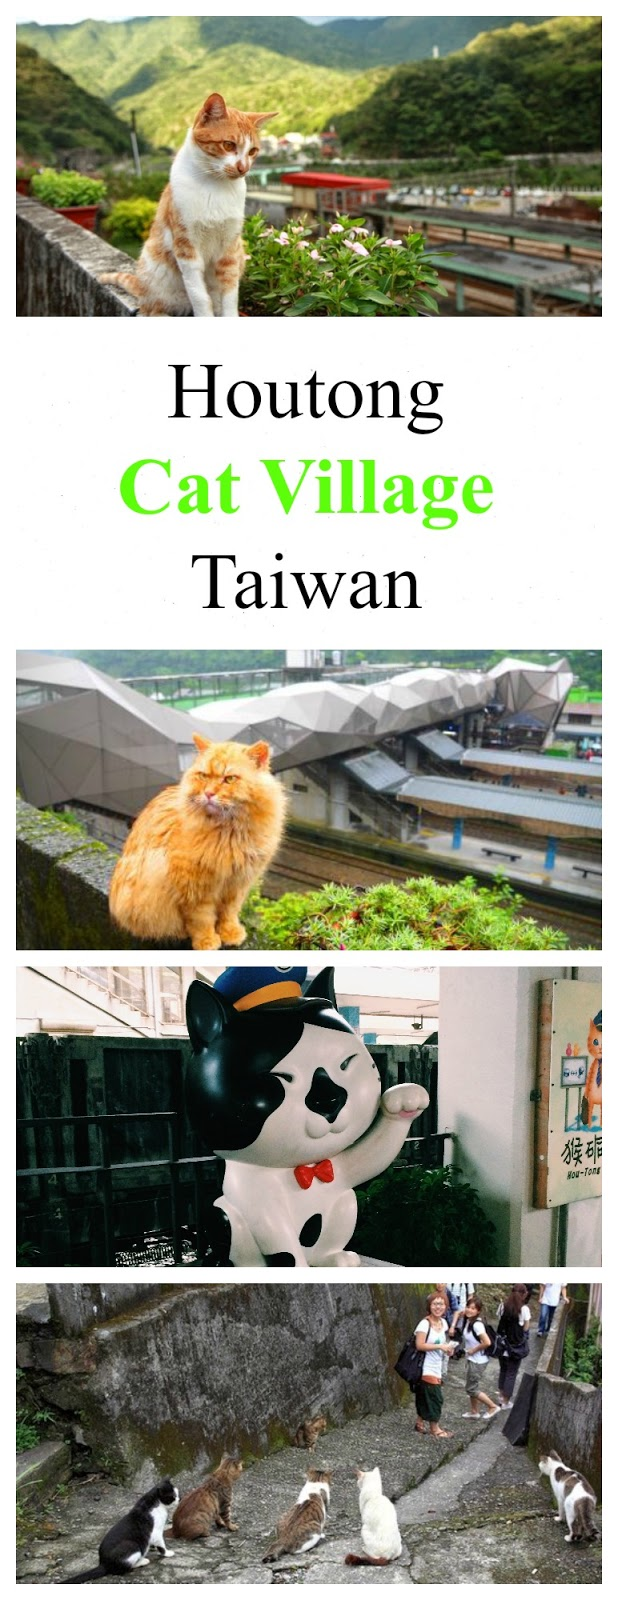 cat village cats houtong taiwan